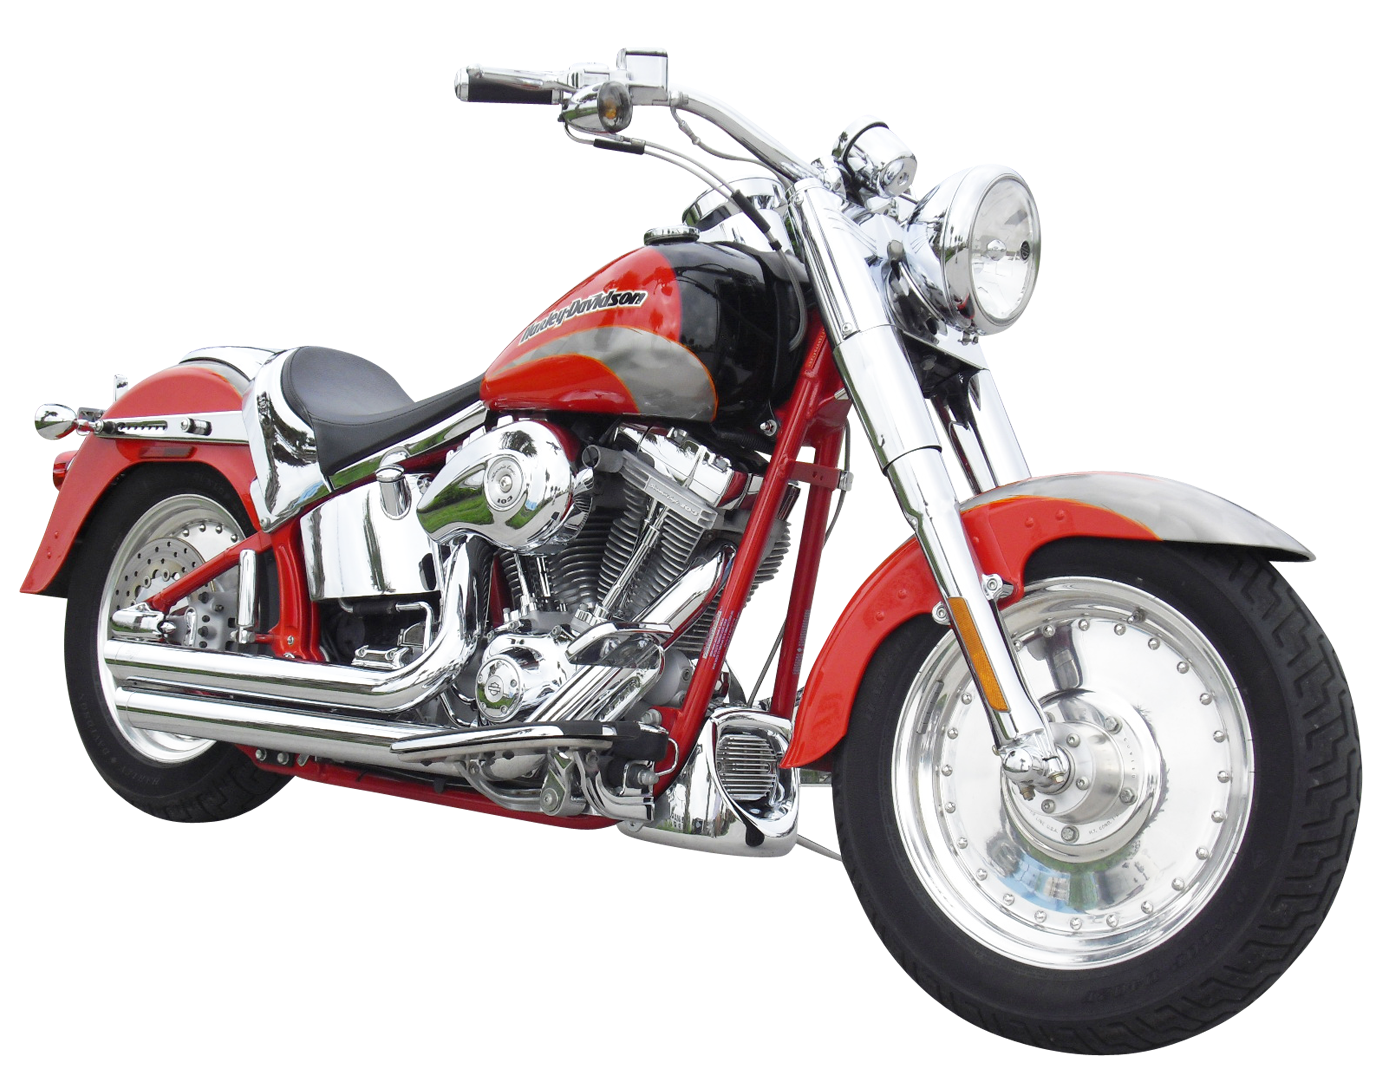 Harley davidson png . Motorcycle clipart toy motorcycle